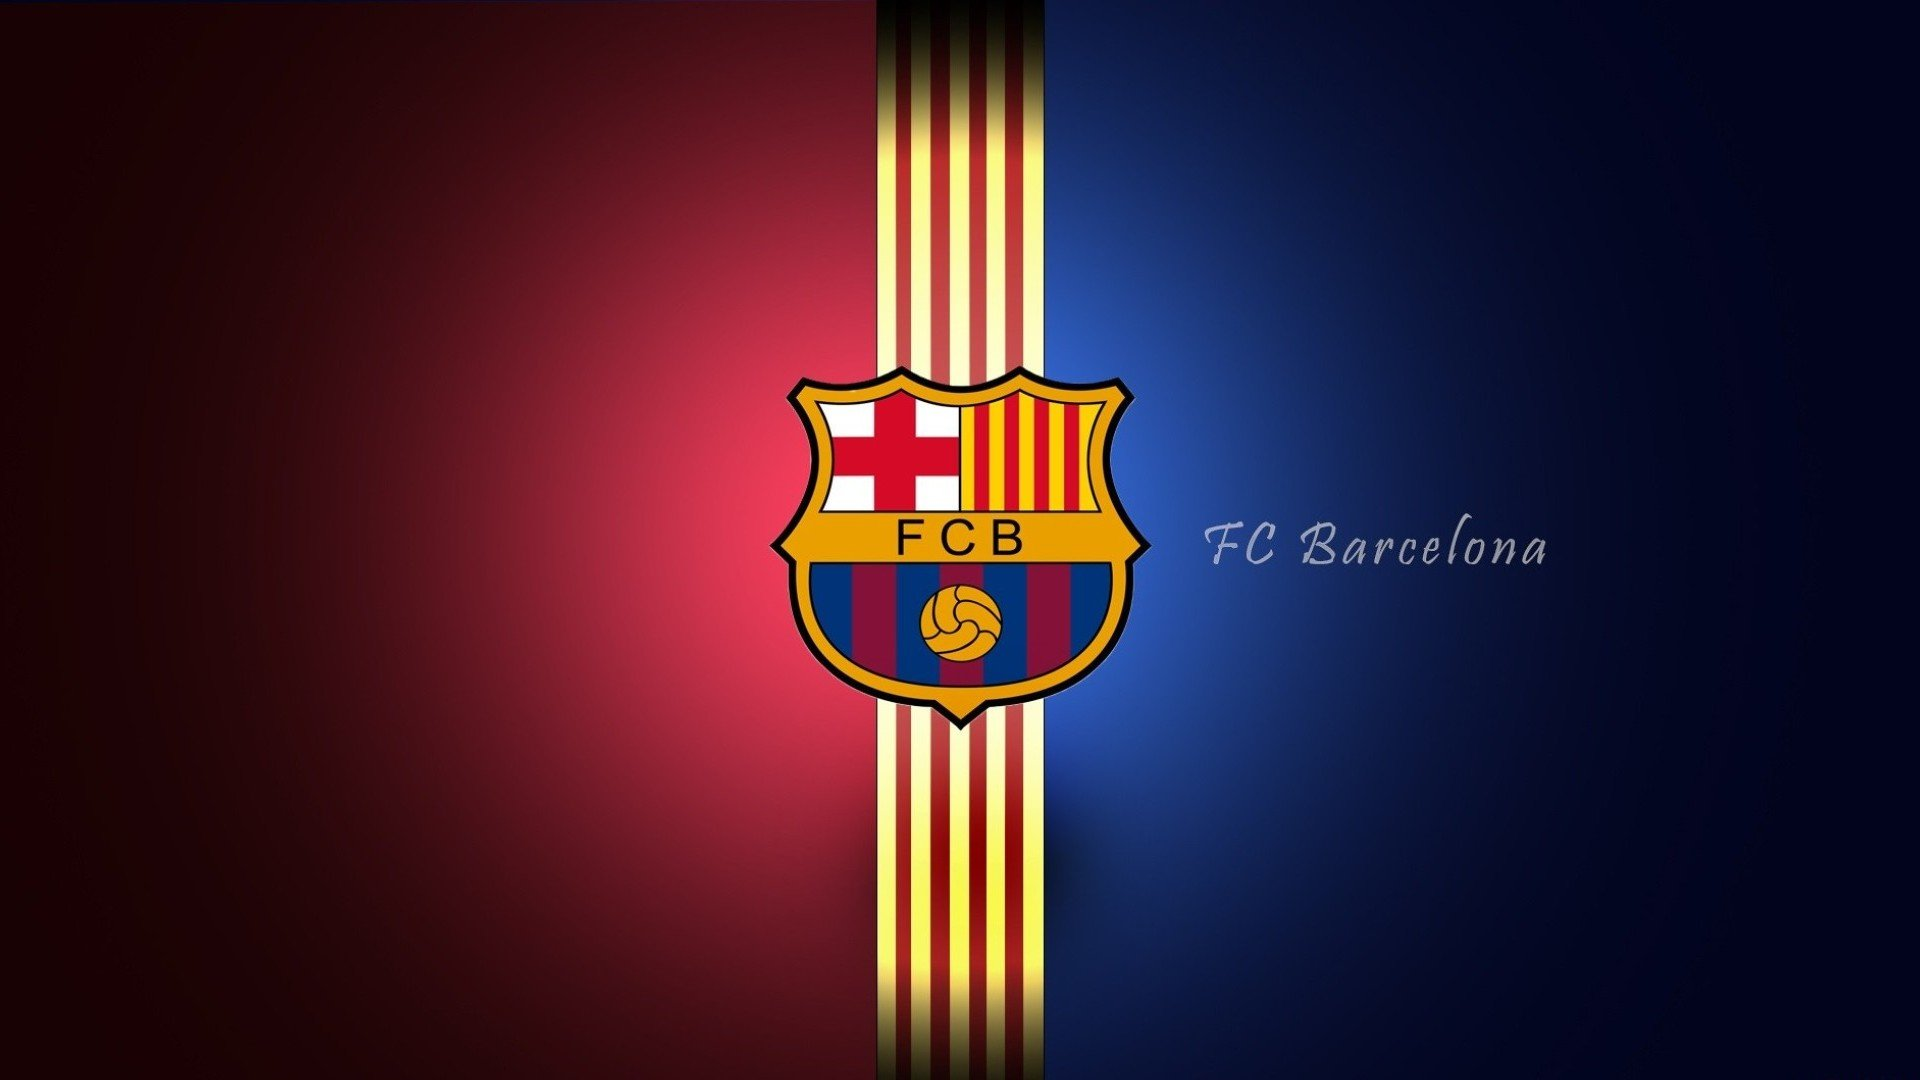 FC Barcelona Wallpapers HD Download 1920x1080